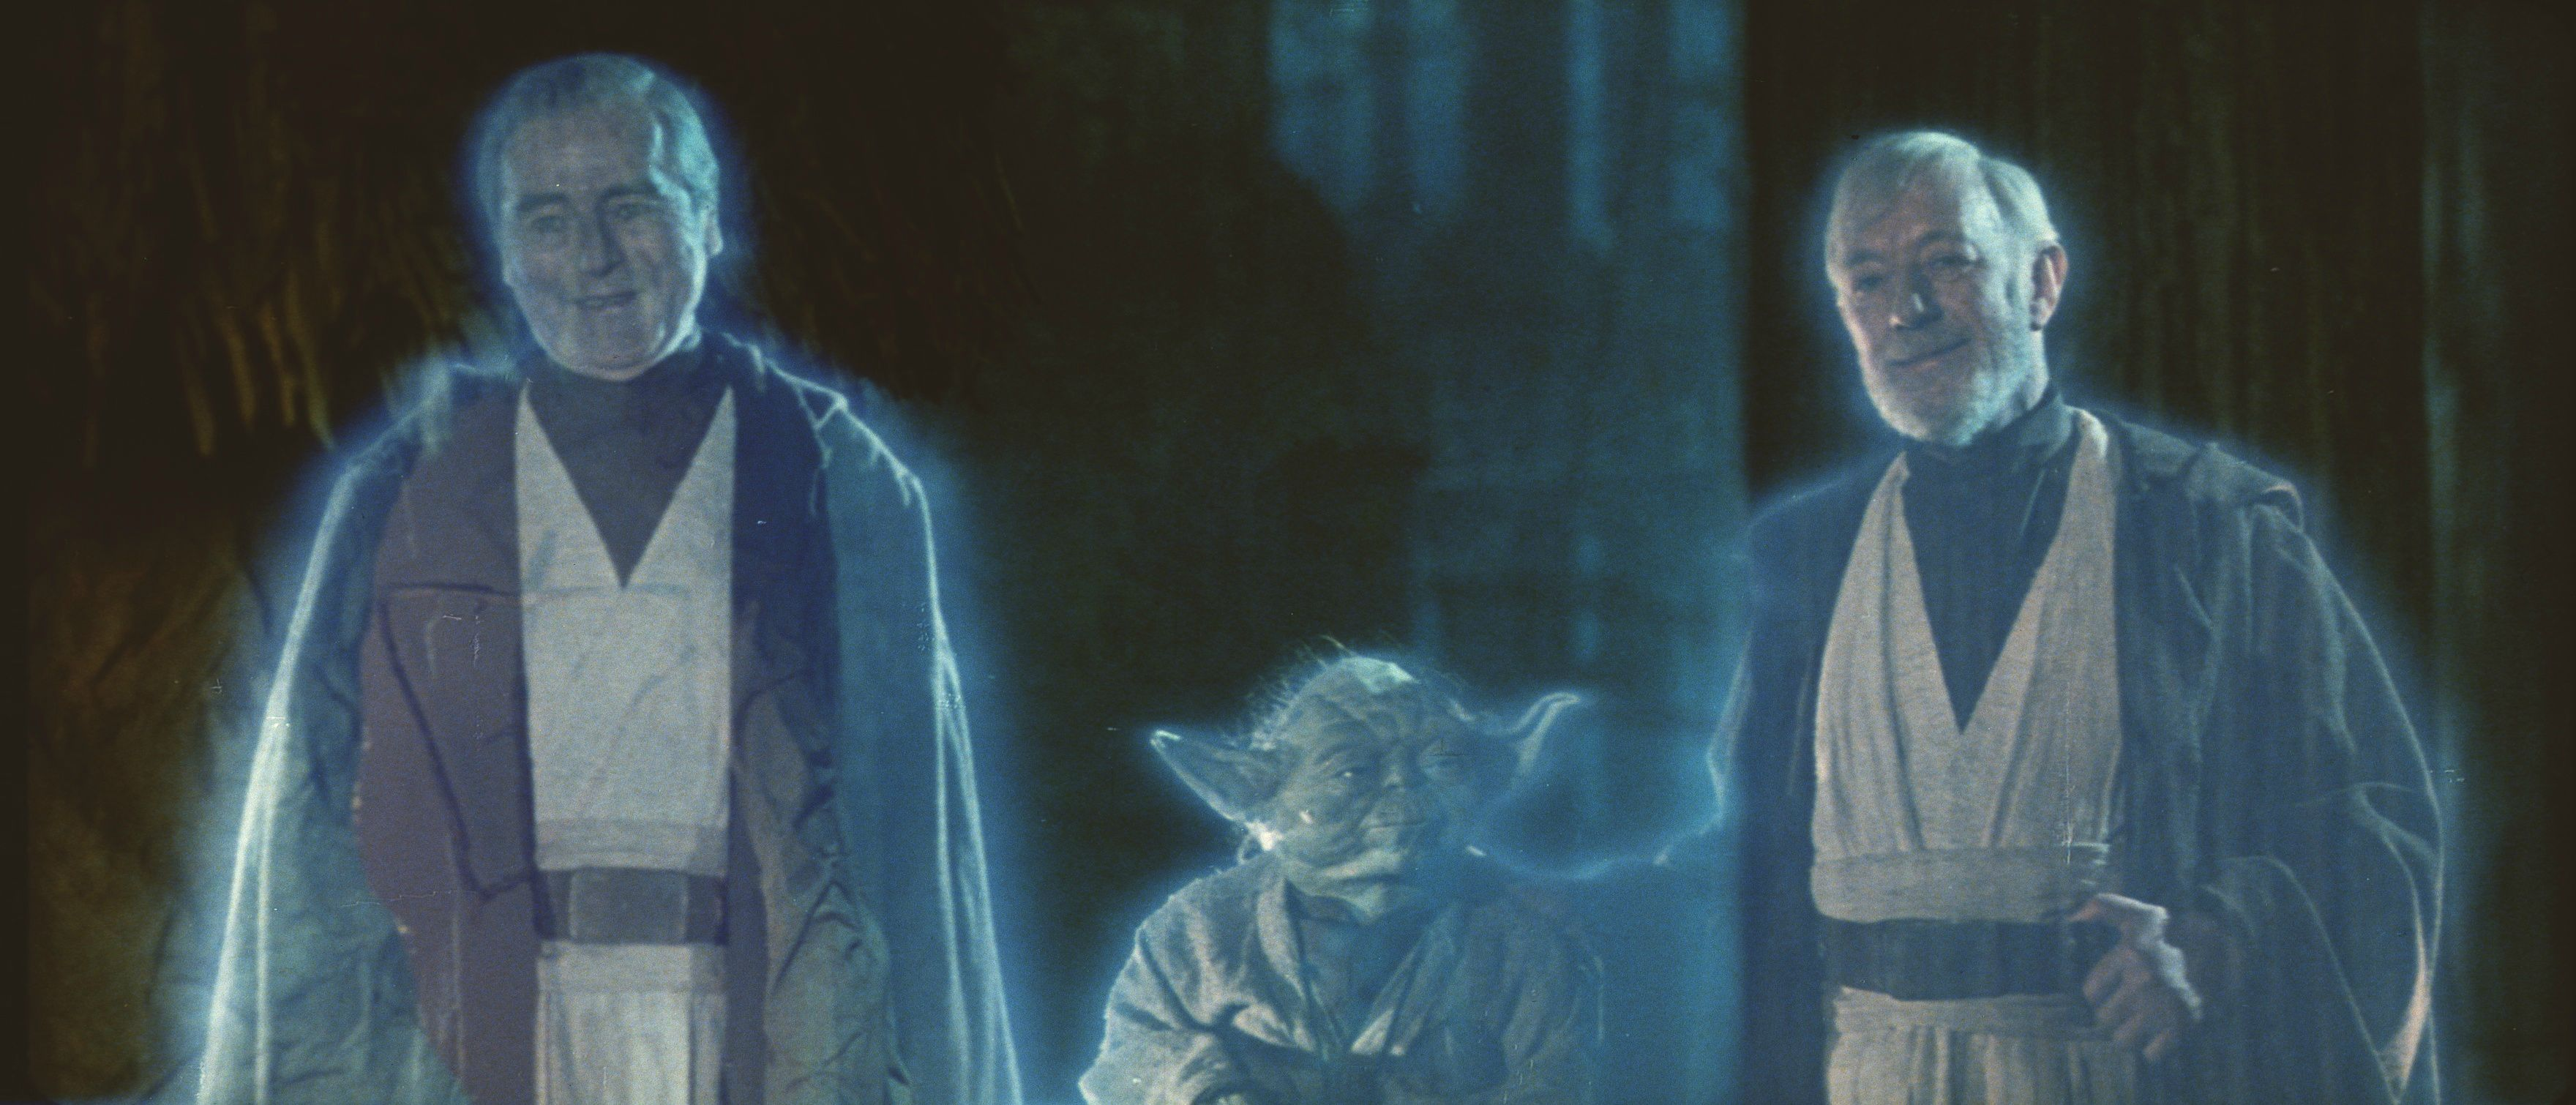 Free Download Vi Return Of The Jedi Yoda Old Anakin Obi Wan